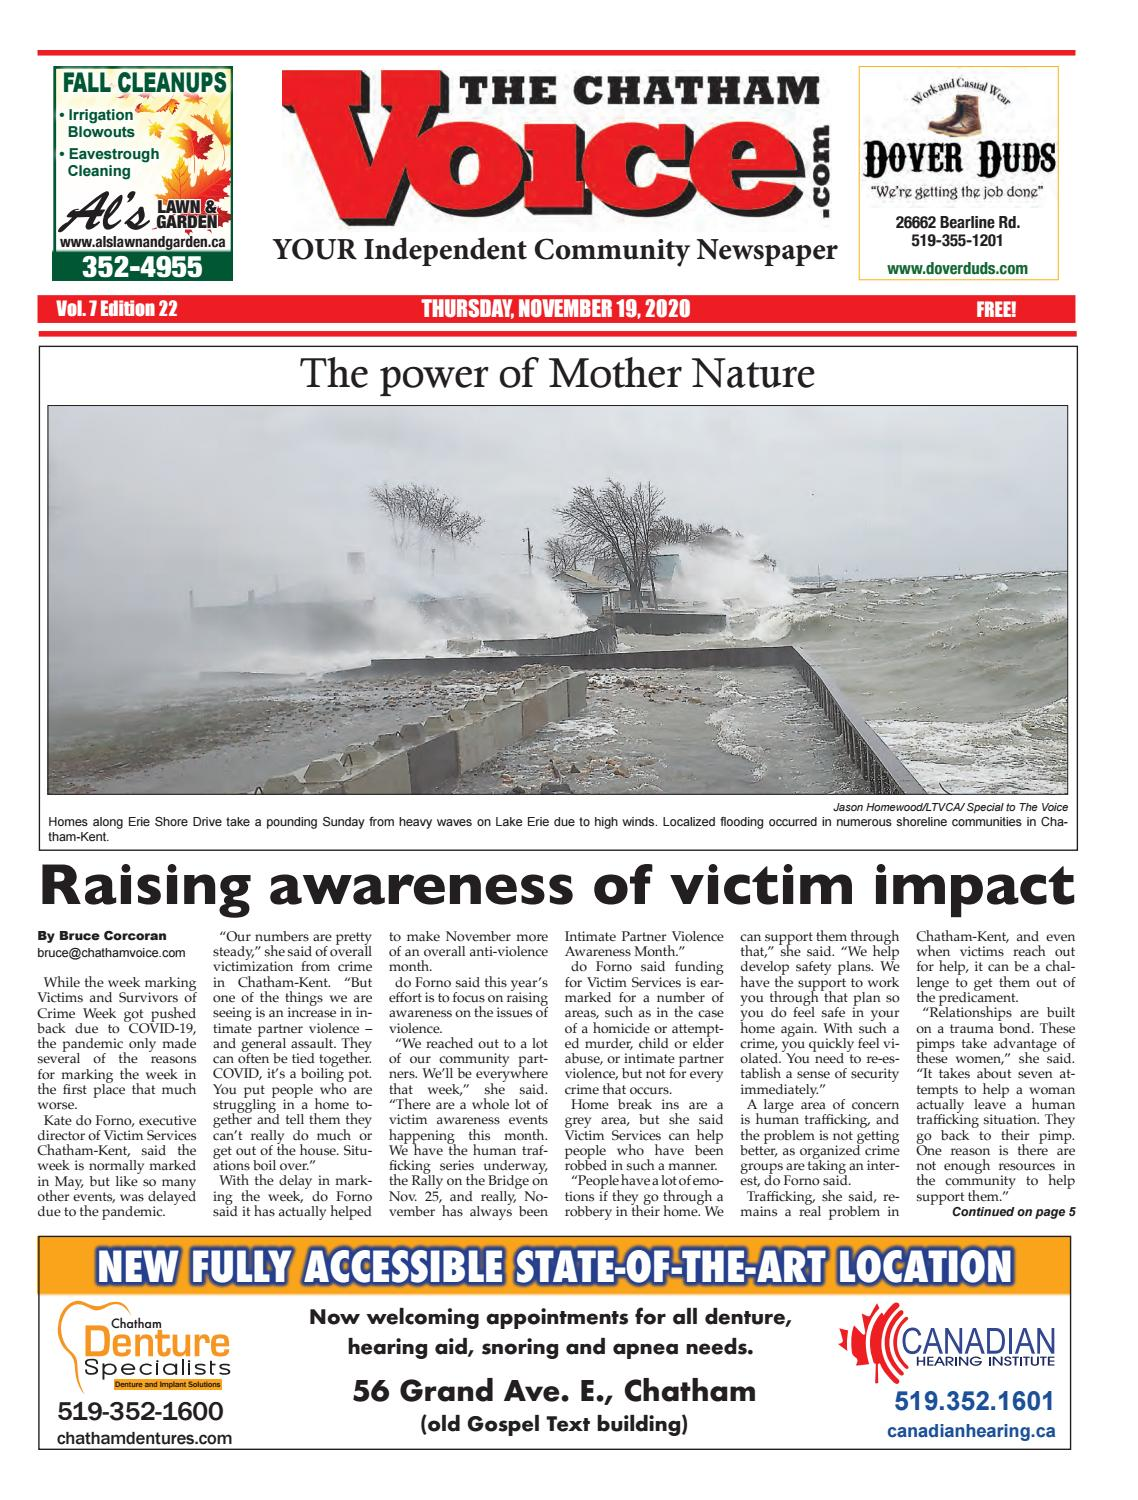 The Chatham Voice Nov 19 2020 By Chatham Voice Issuu